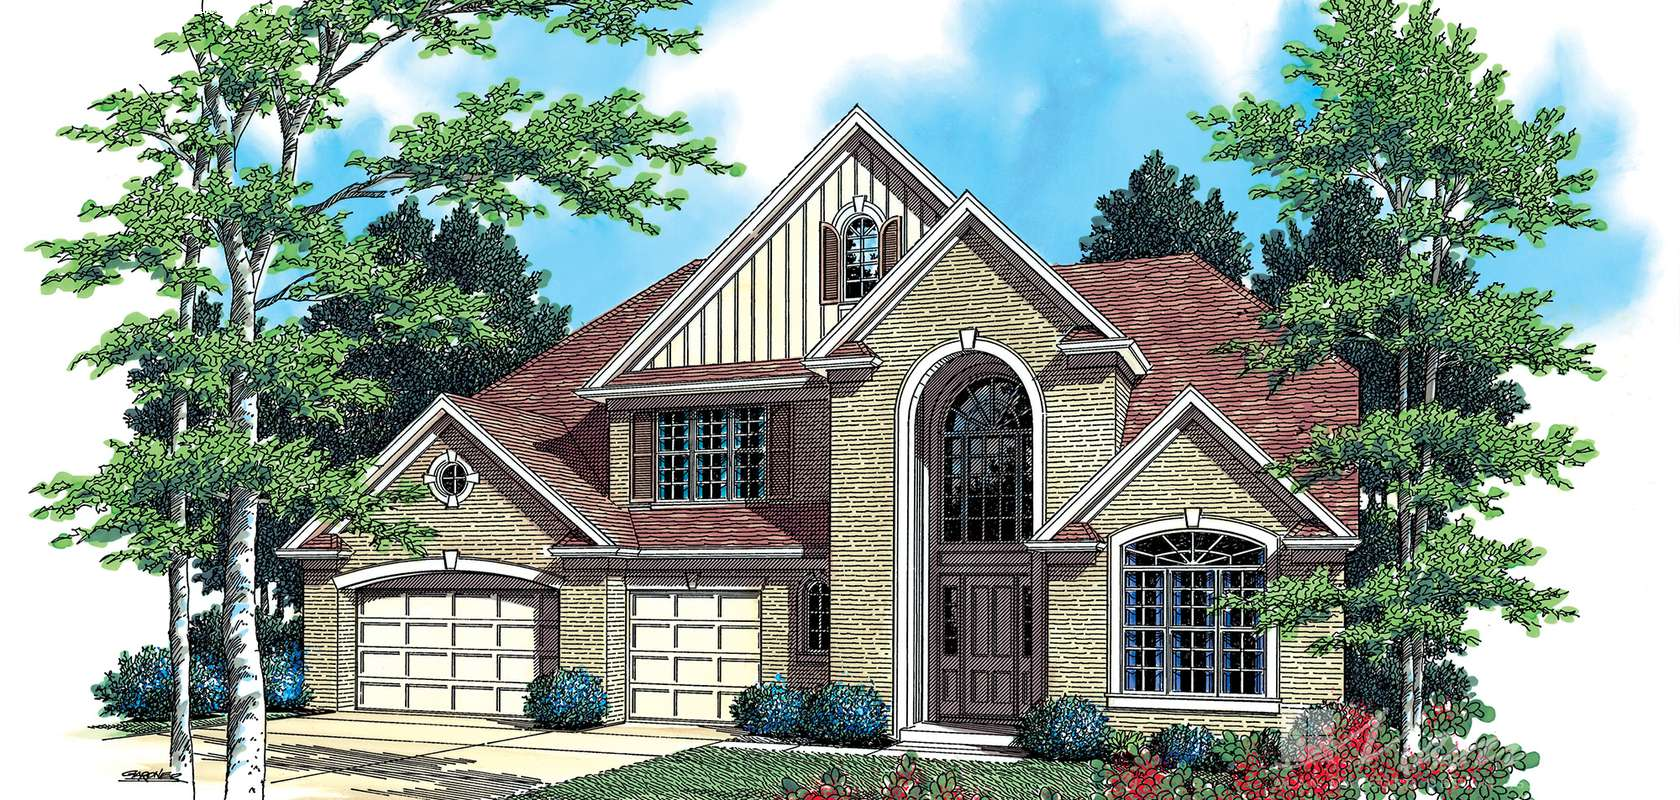 Mascord House Plan B2355: The Reynolds